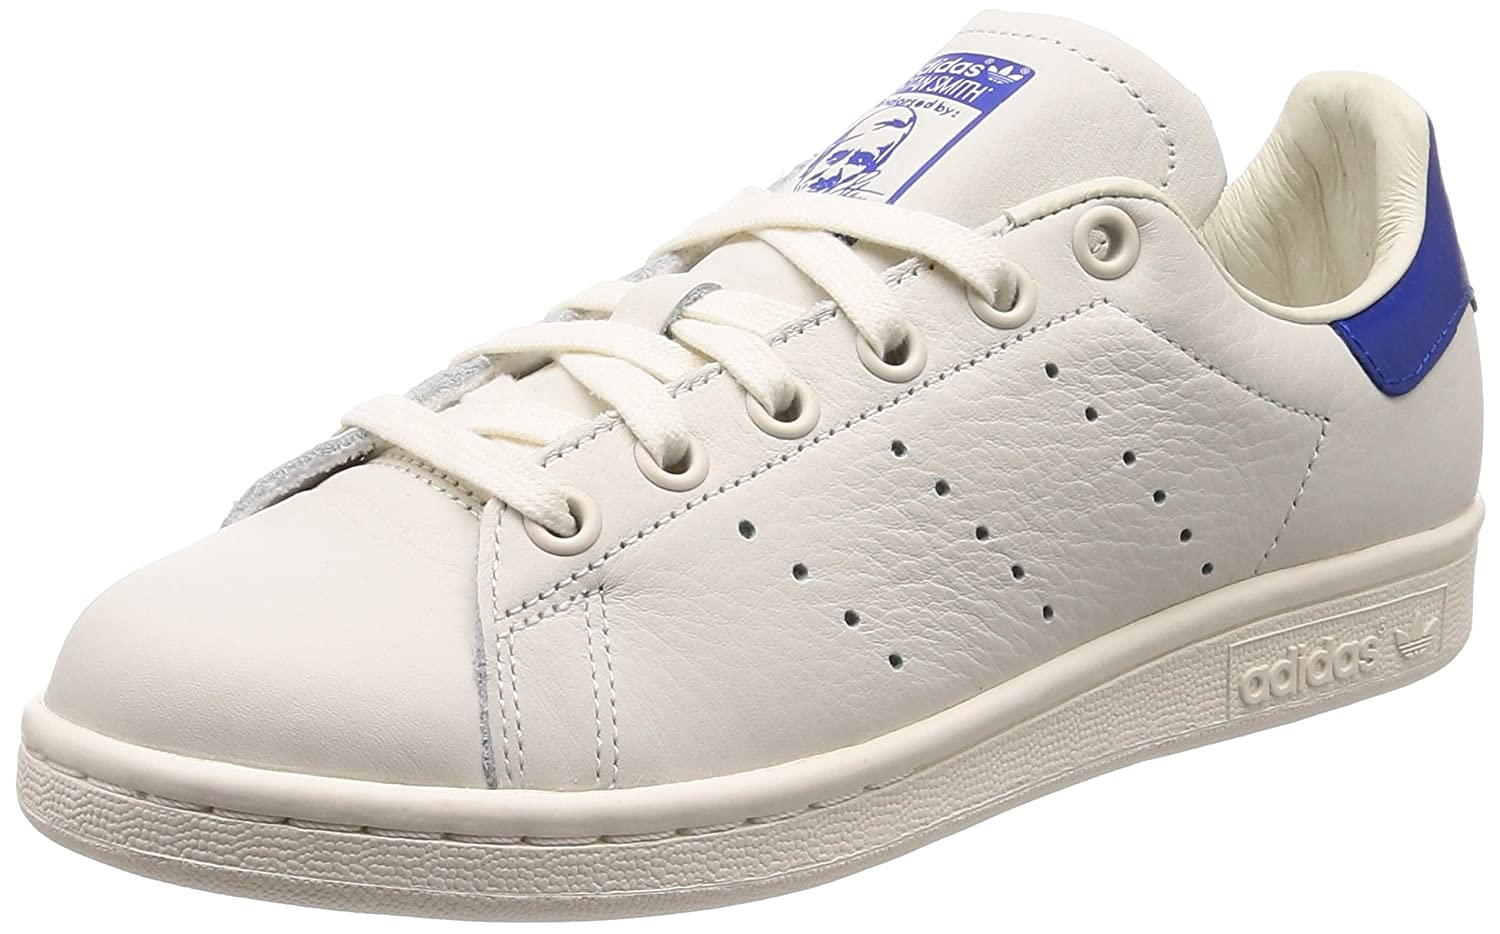 TALLA 46 EU. Zapatilla Adidas - Stan Smith Chalk White/Core Black Hombre